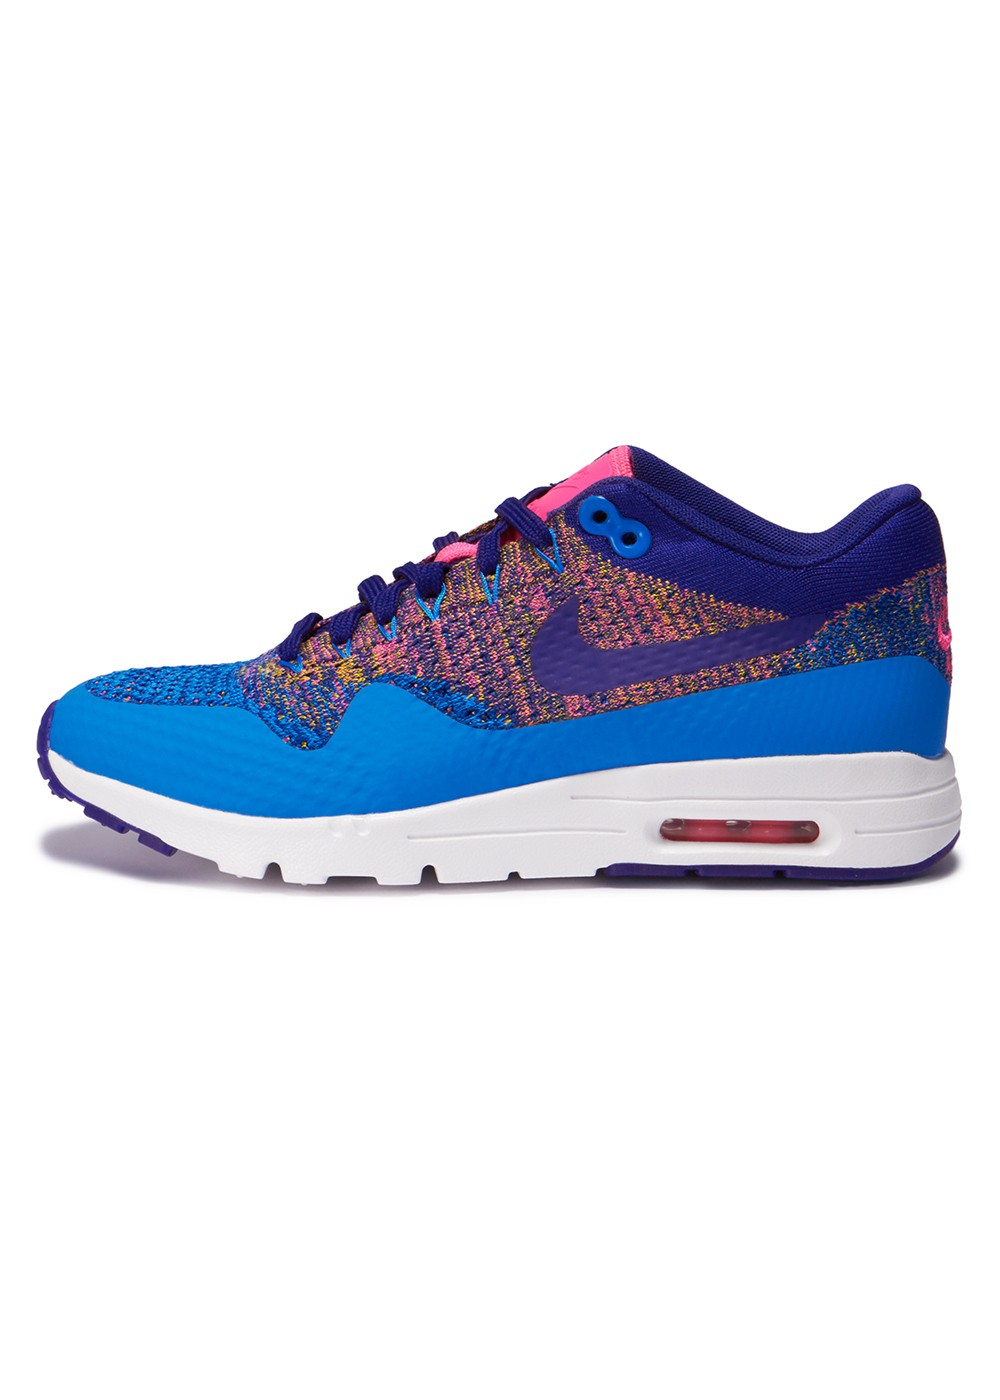 WMNS AIR MAX 1 ULTRA FLYKNIT 843387-400【NIKE】|PINK|スニーカー|Styles